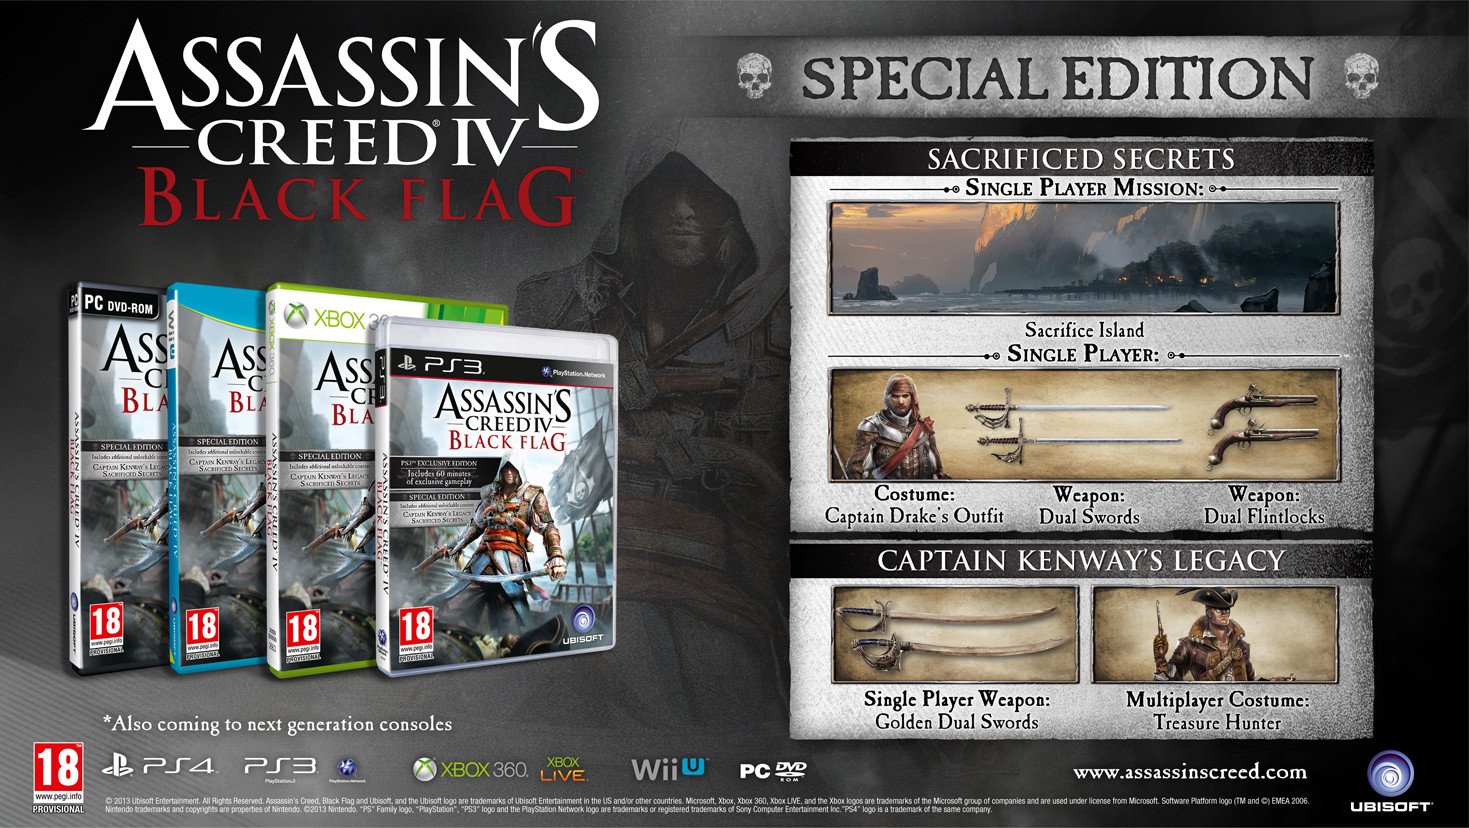 [PS3/PS4/Xbox 360/PC/Wii U] Assassin's Creed 4 Black Flag AcvWOv6r